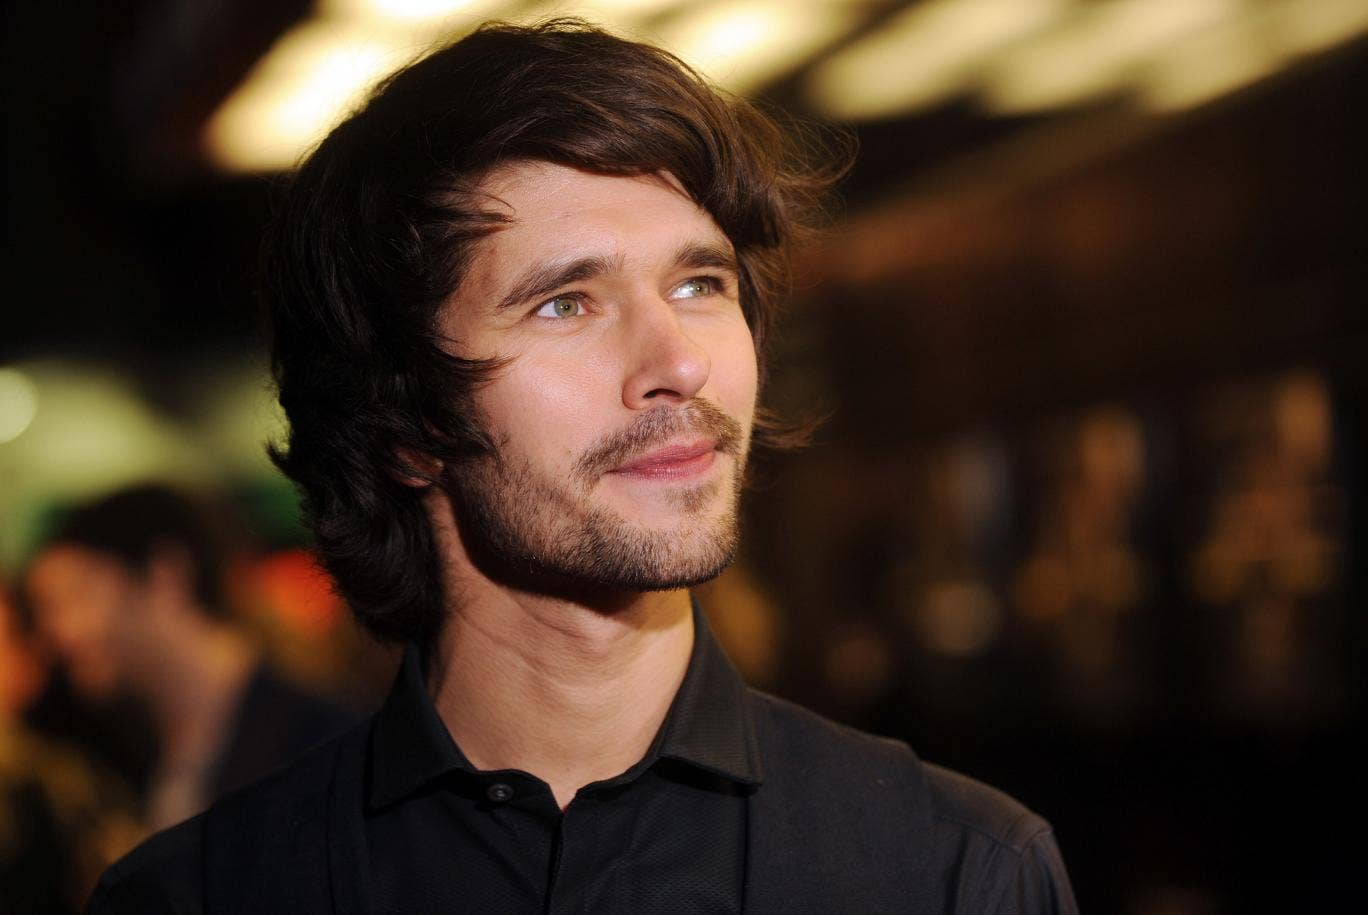 Ben Whishaw has been confirmed to play Freddie Mercury in a biopic about the Queen frontman